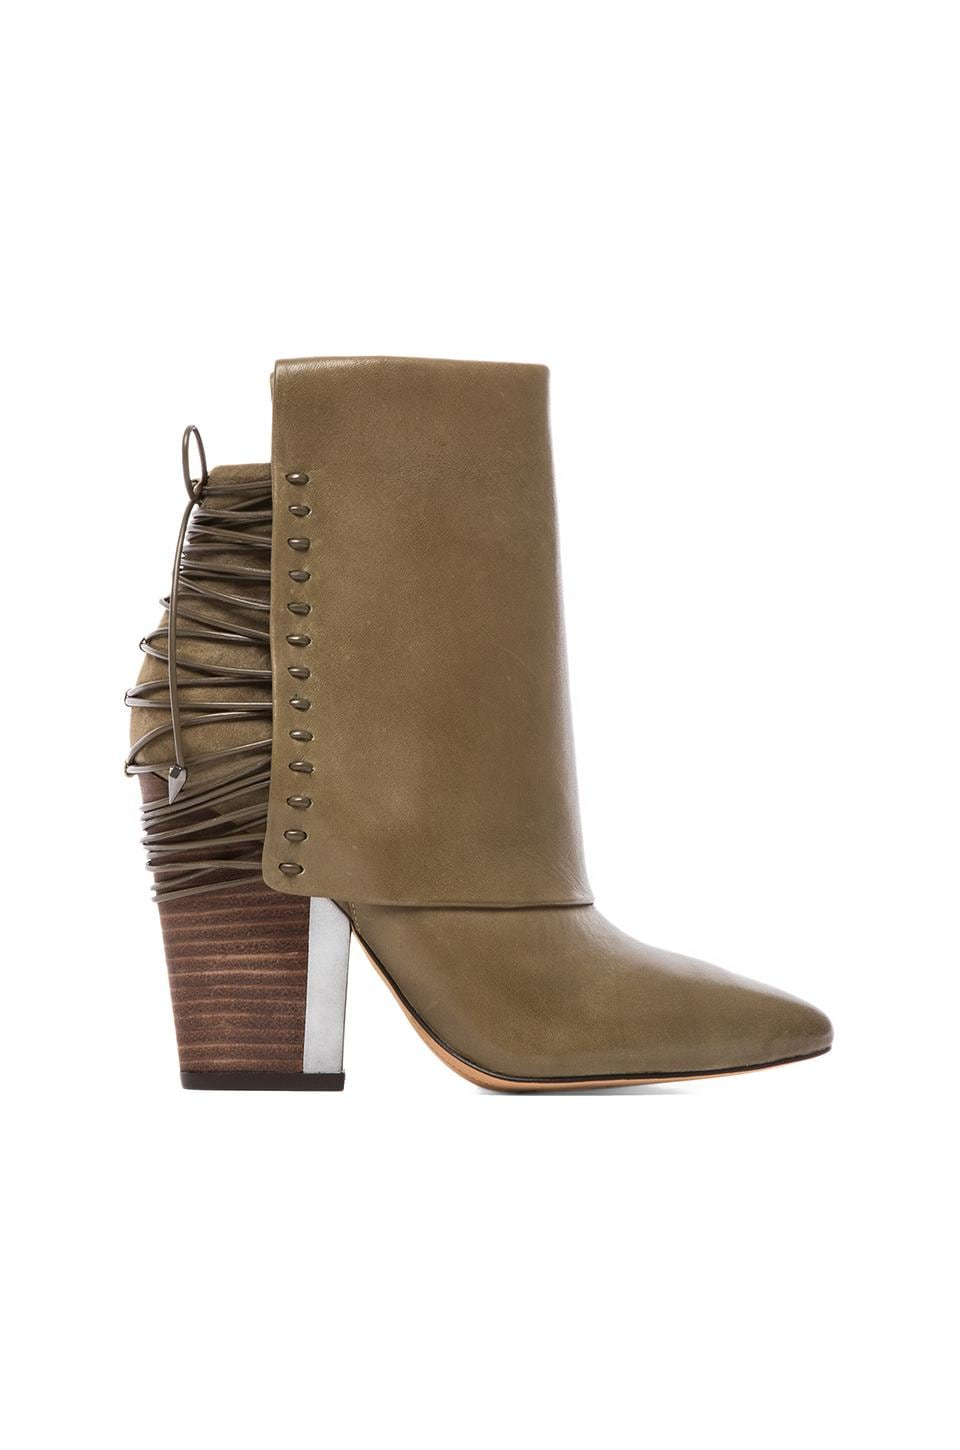 Sam Edelman Martina Bootie in Moss Green